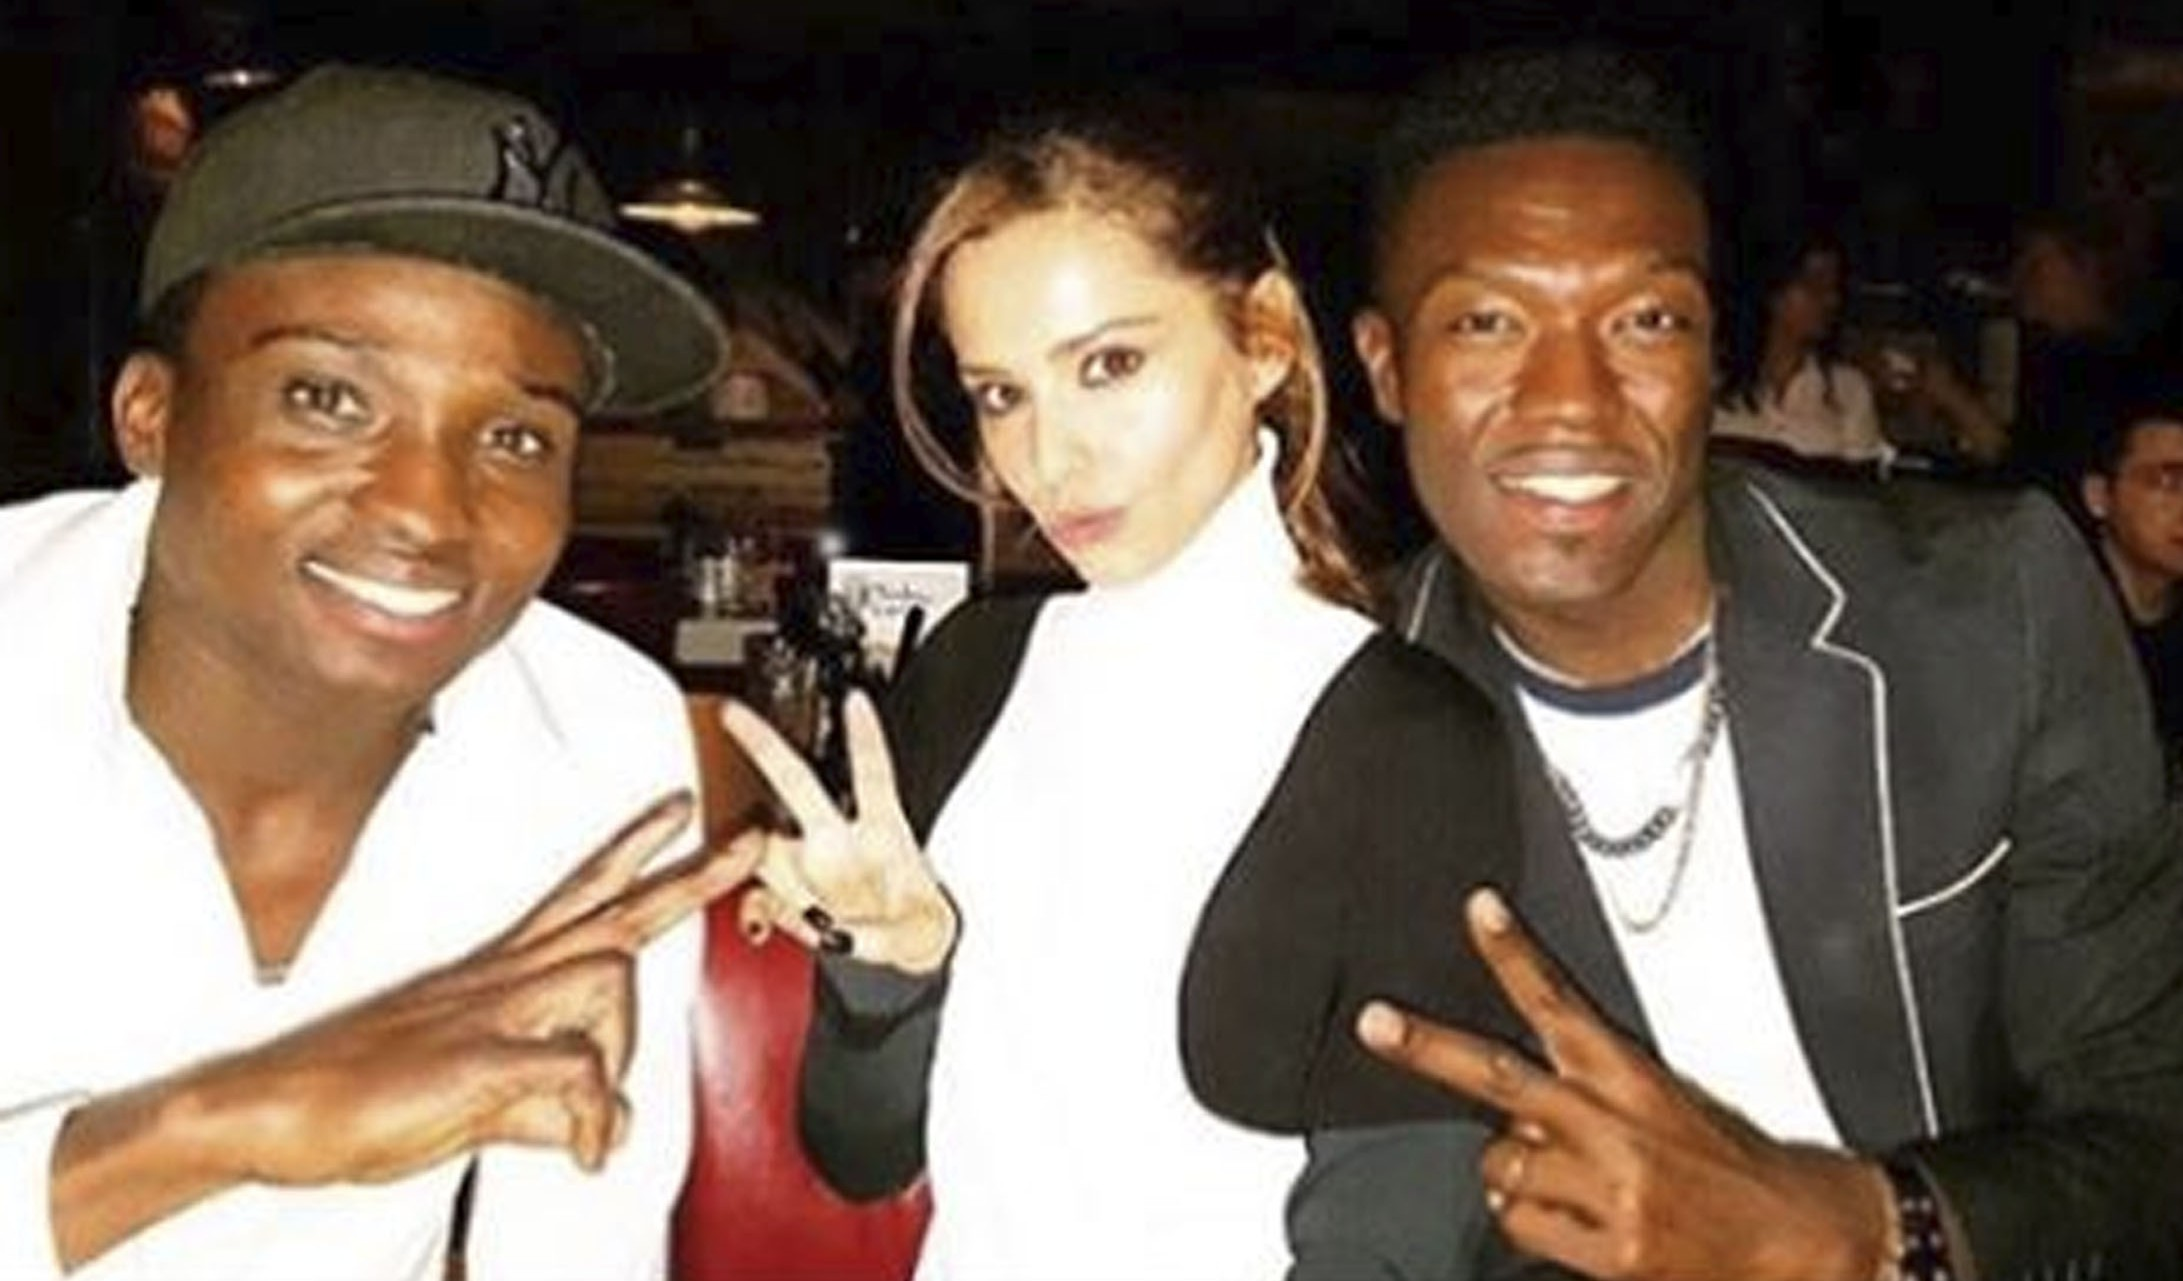 X Factor stars Reggie N Bollie are happy for 'angel' Cheryl after the birth of her baby with Liam Payne